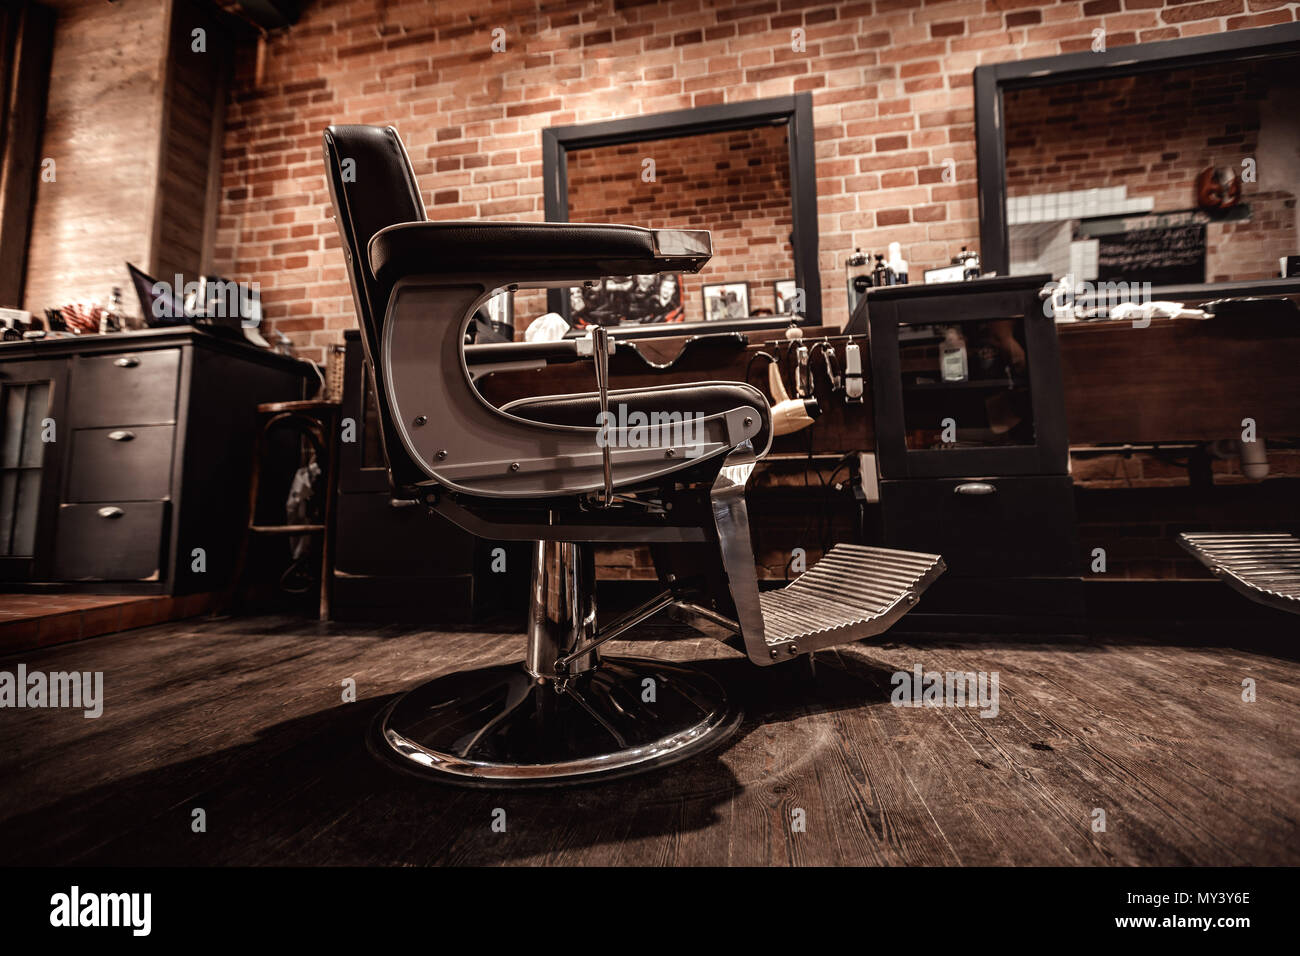 Client's stylish barber chair - Stock Image - Antique Salon Chair Stock Photos & Antique Salon Chair Stock Images